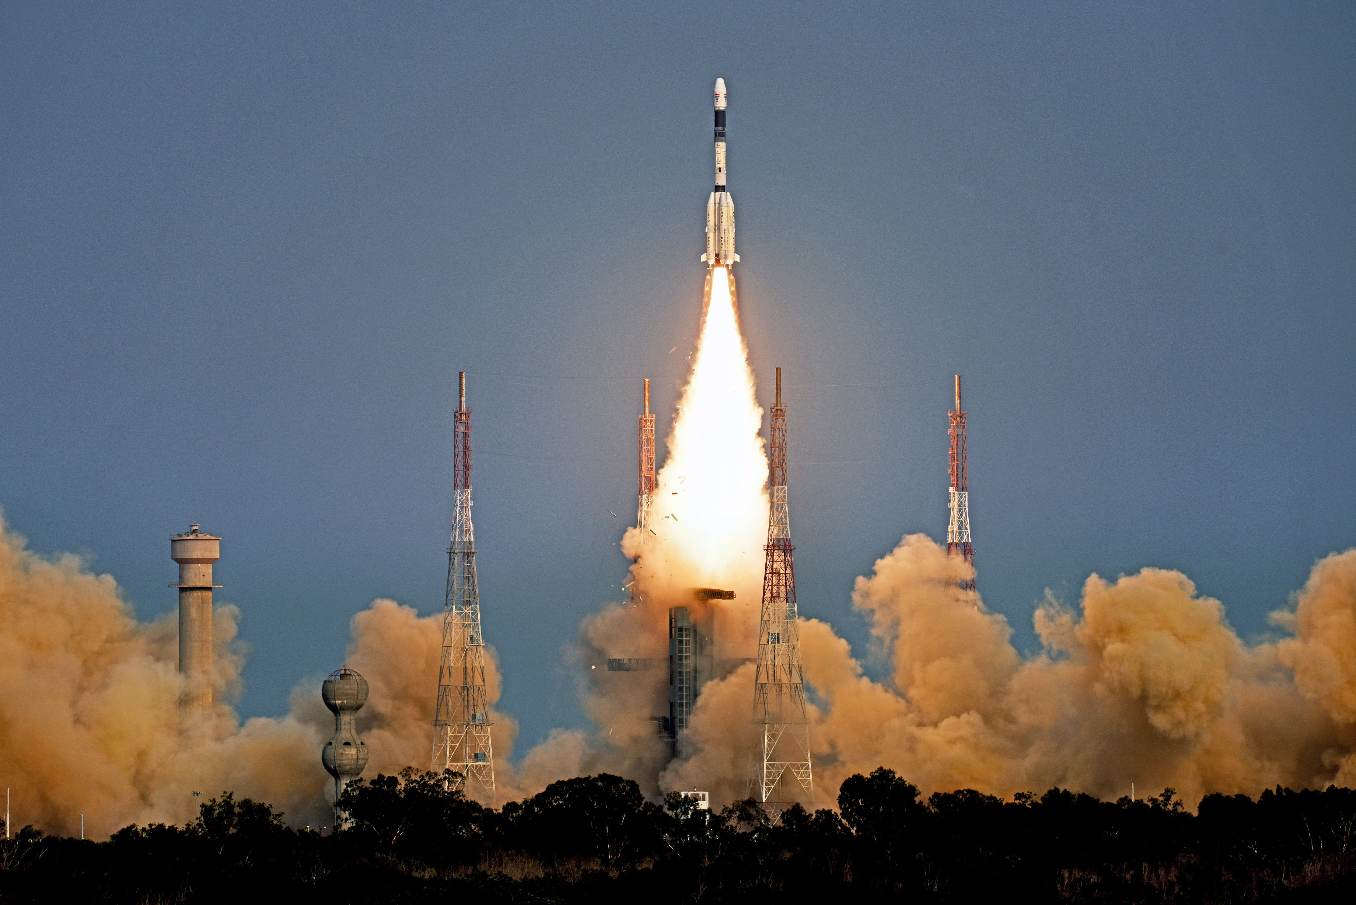 Launch success for India's GSLV